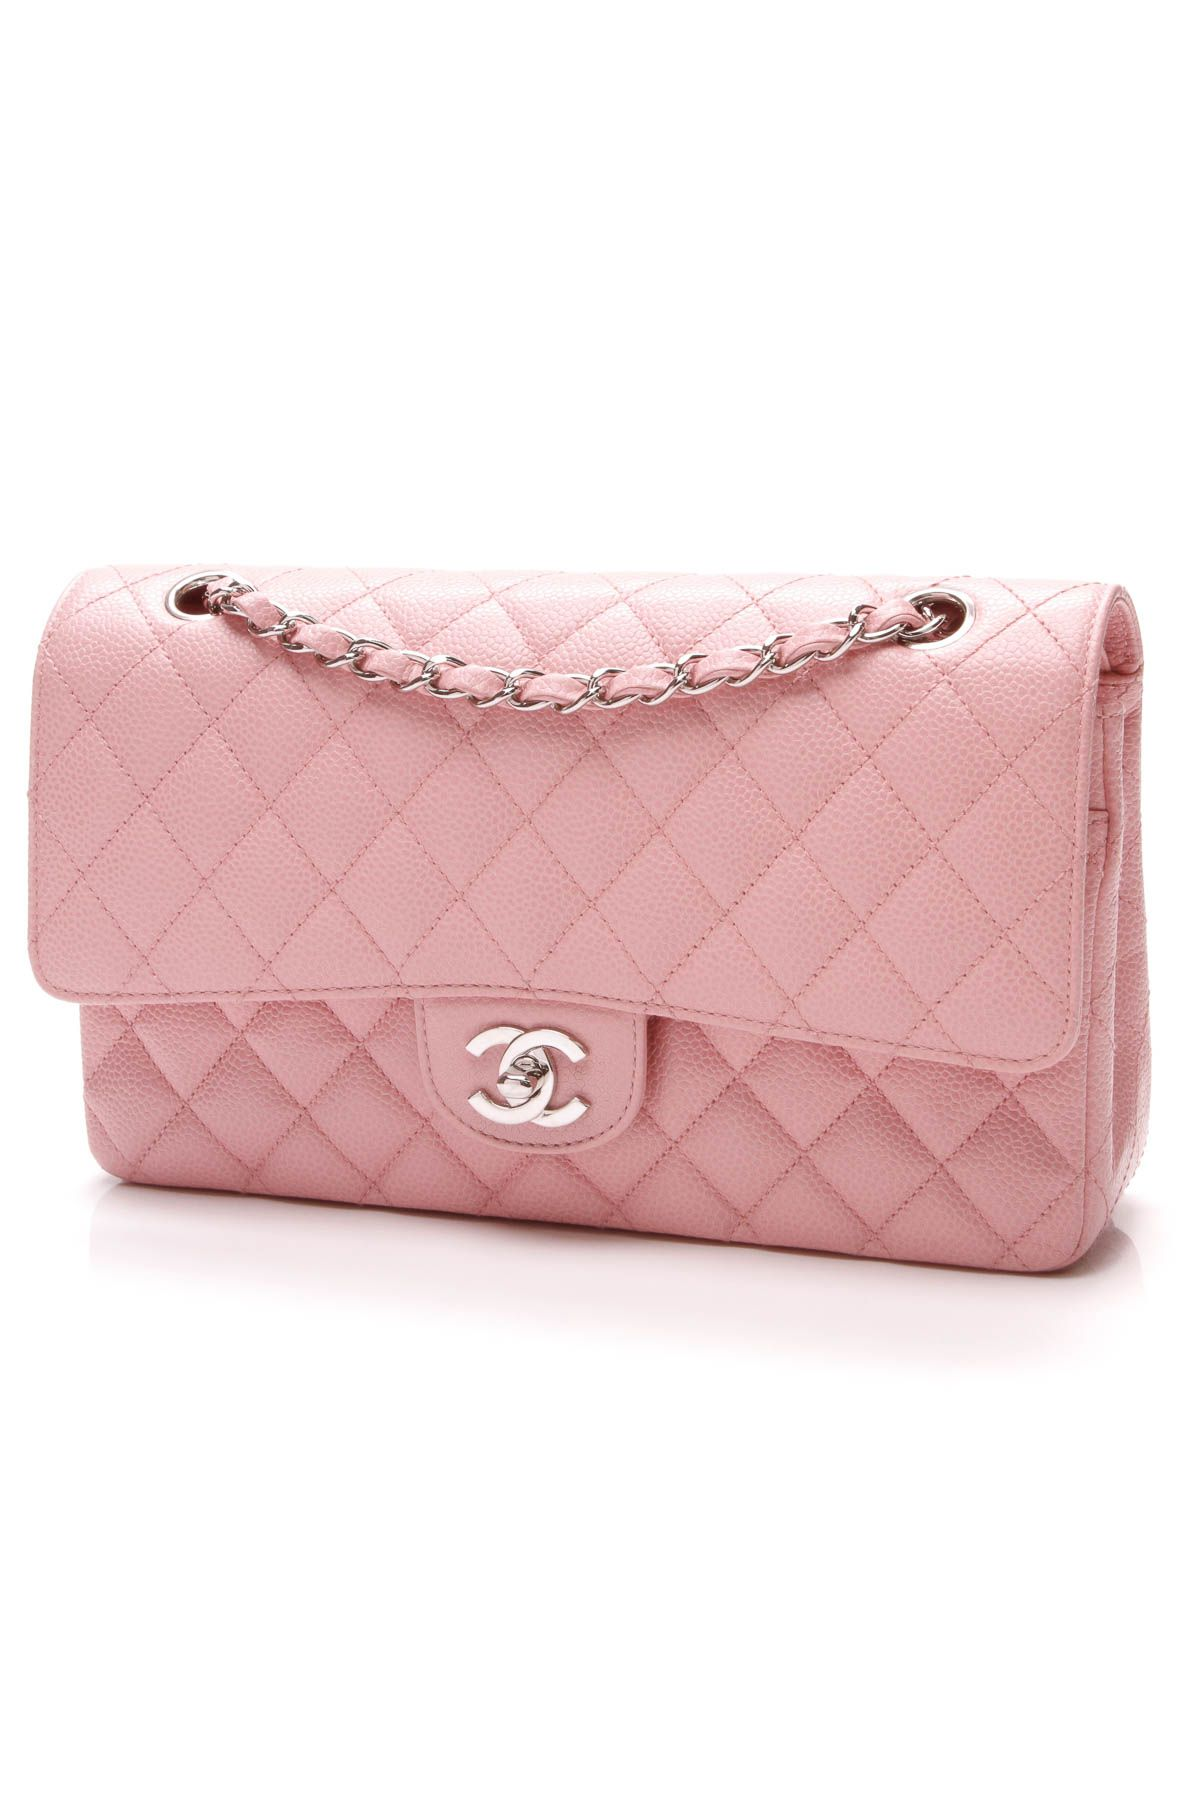 83ed6ef080f2d8 Classic Double Flap Bag - Medium Pink Caviar in 2019 | On The Bright ...